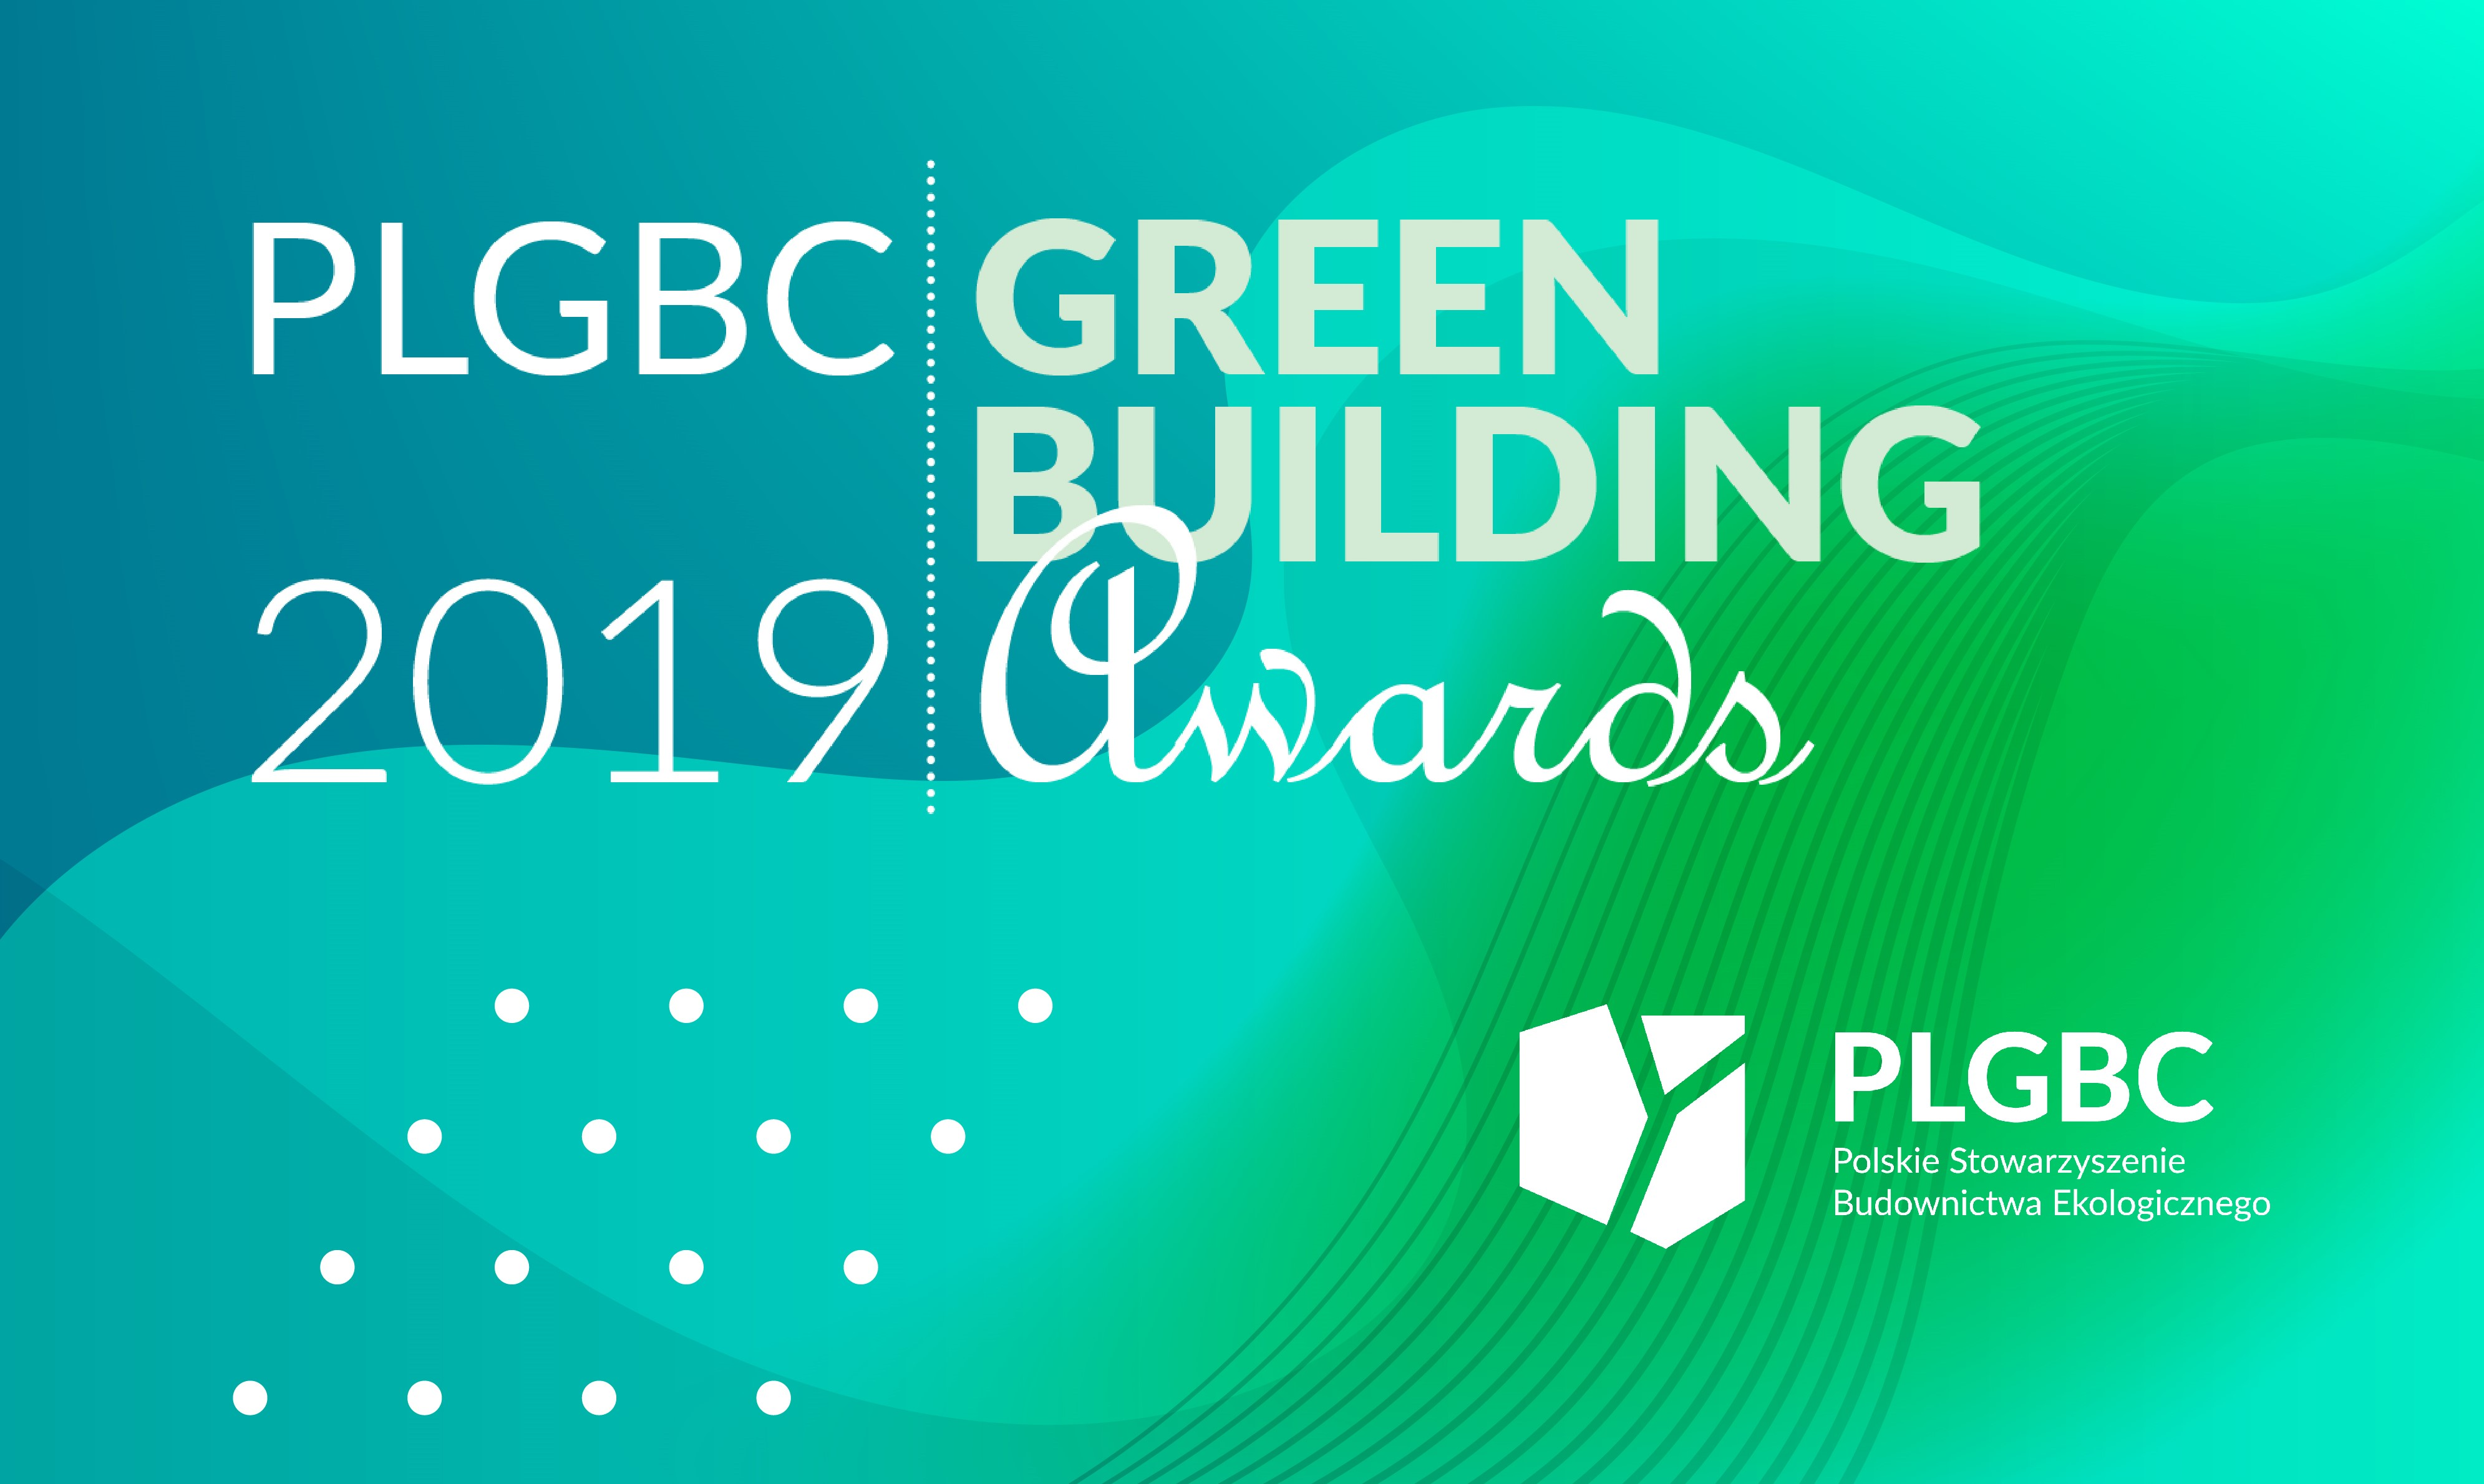 PLGBC GREEN BUILDING AWARDS 2019